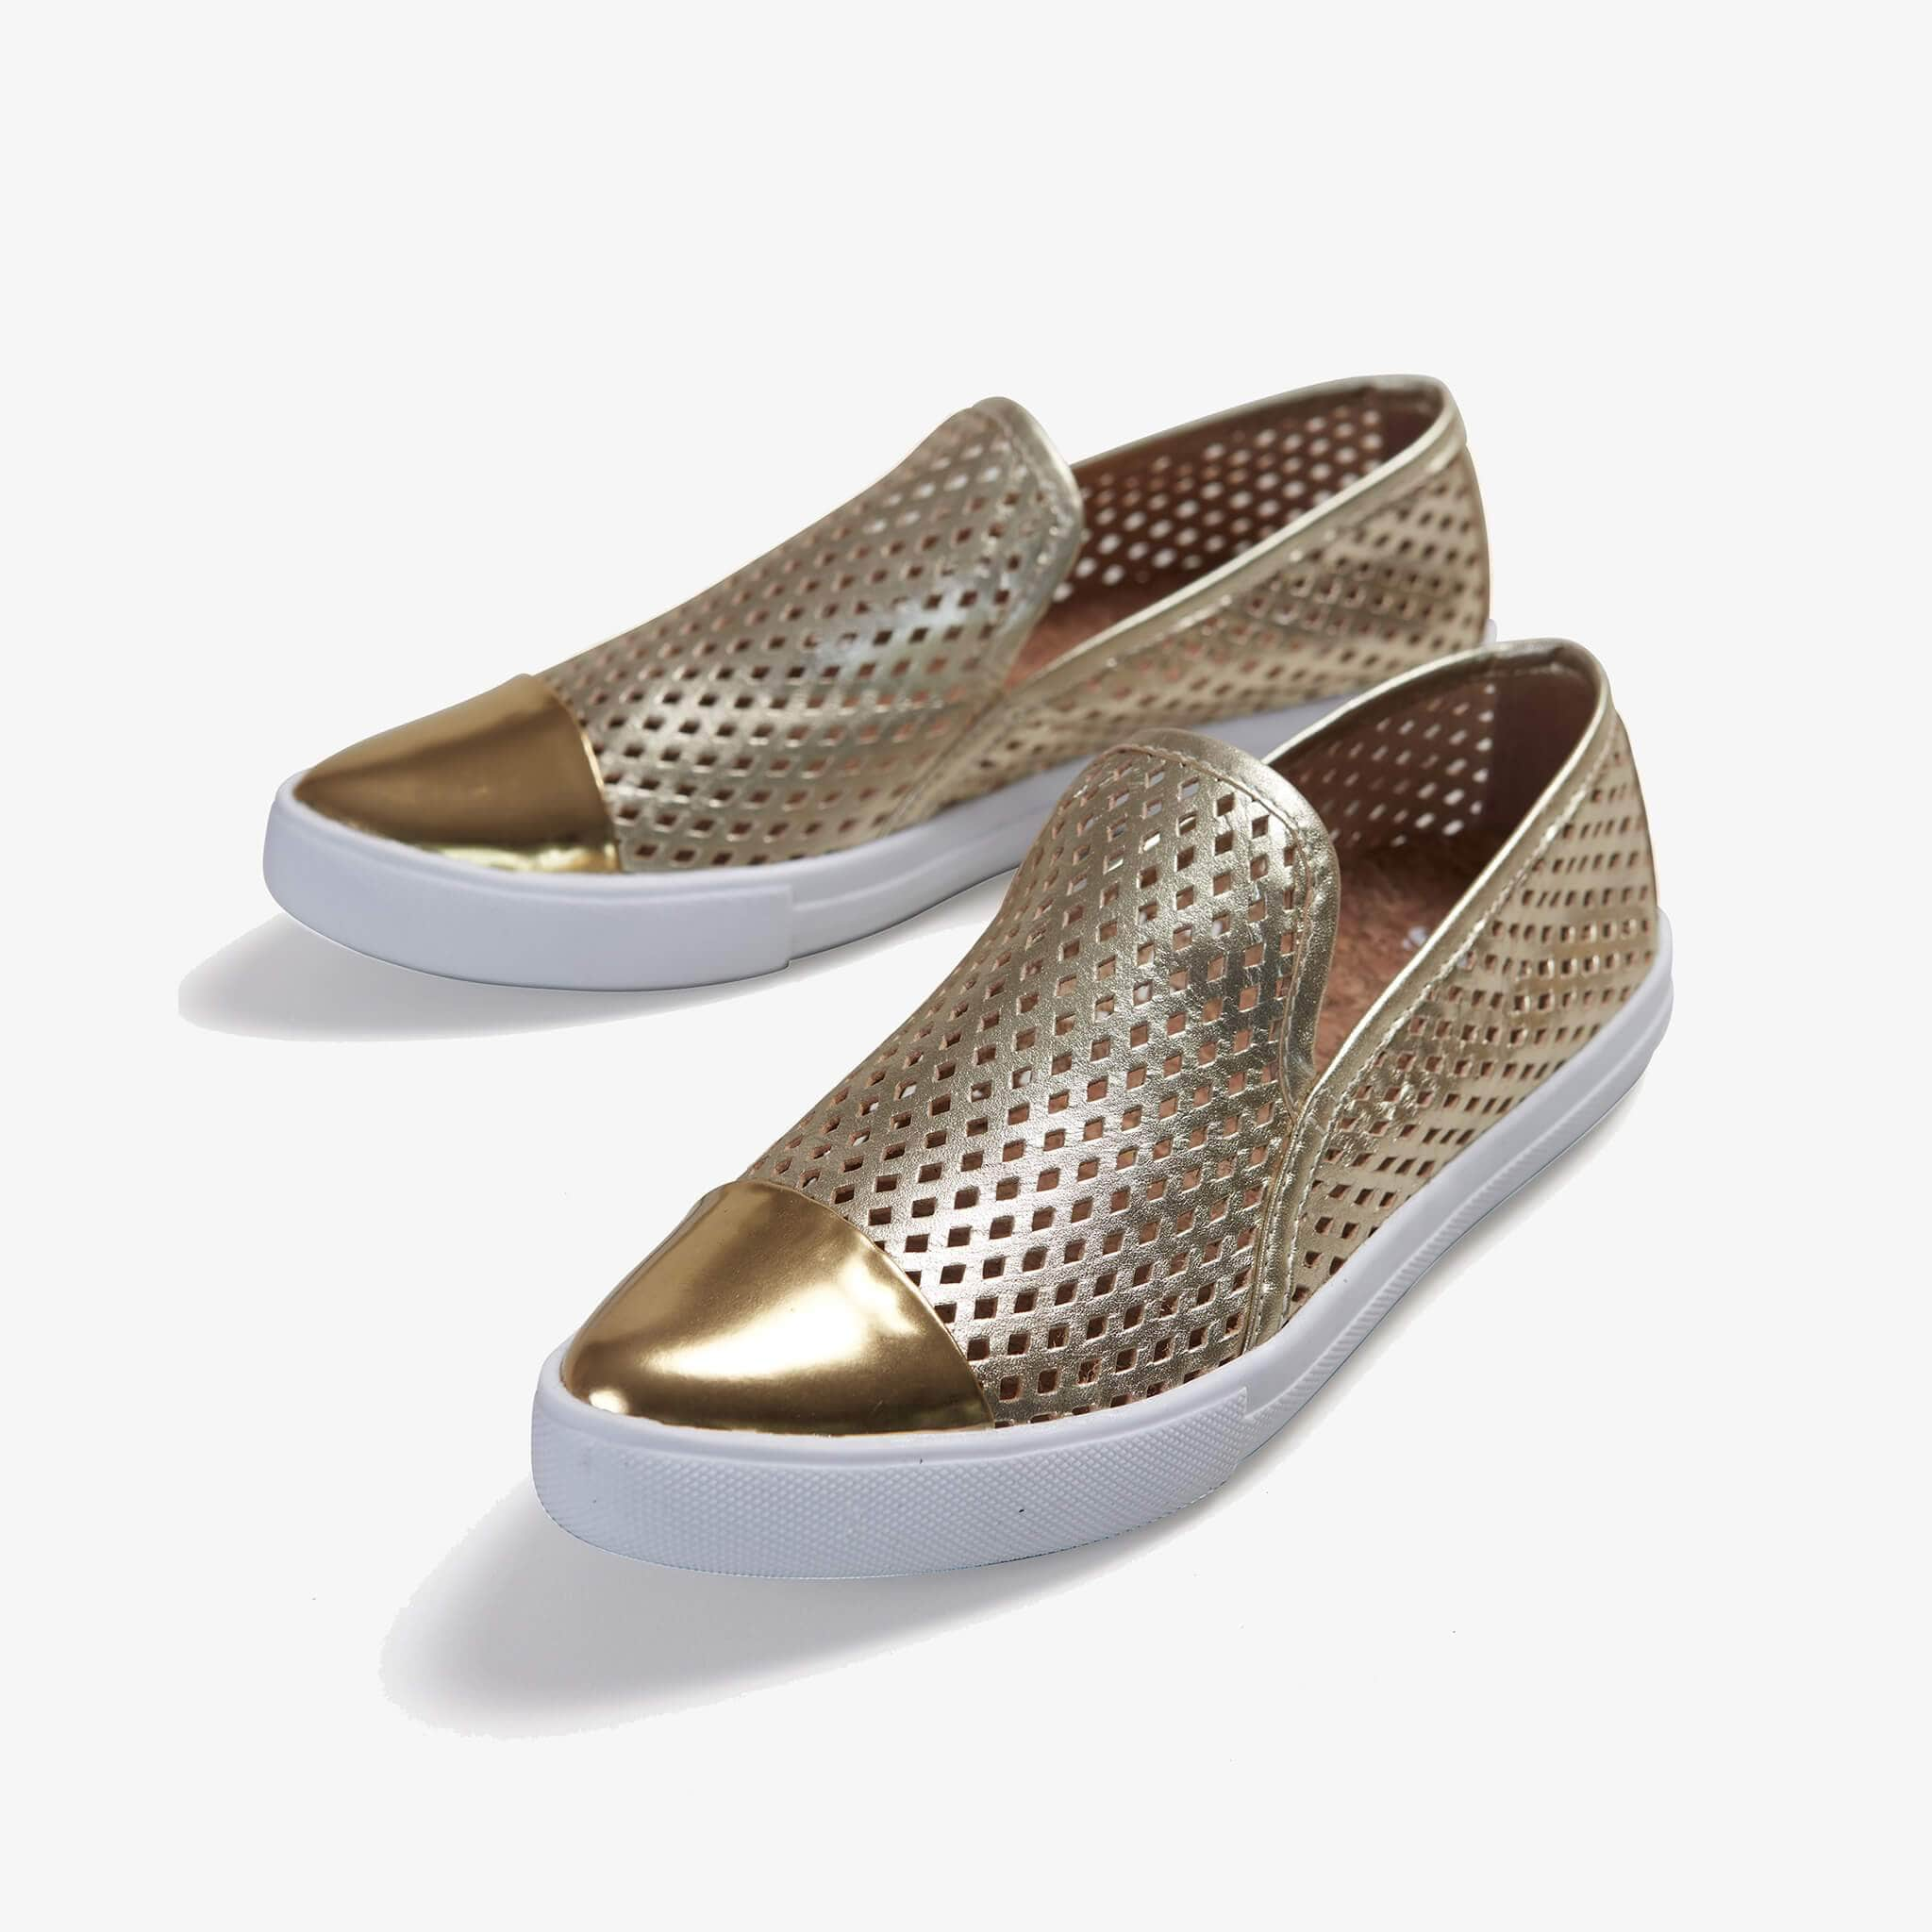 Jibs Slim Gold + Gold Slip On Sneaker Flat Pair